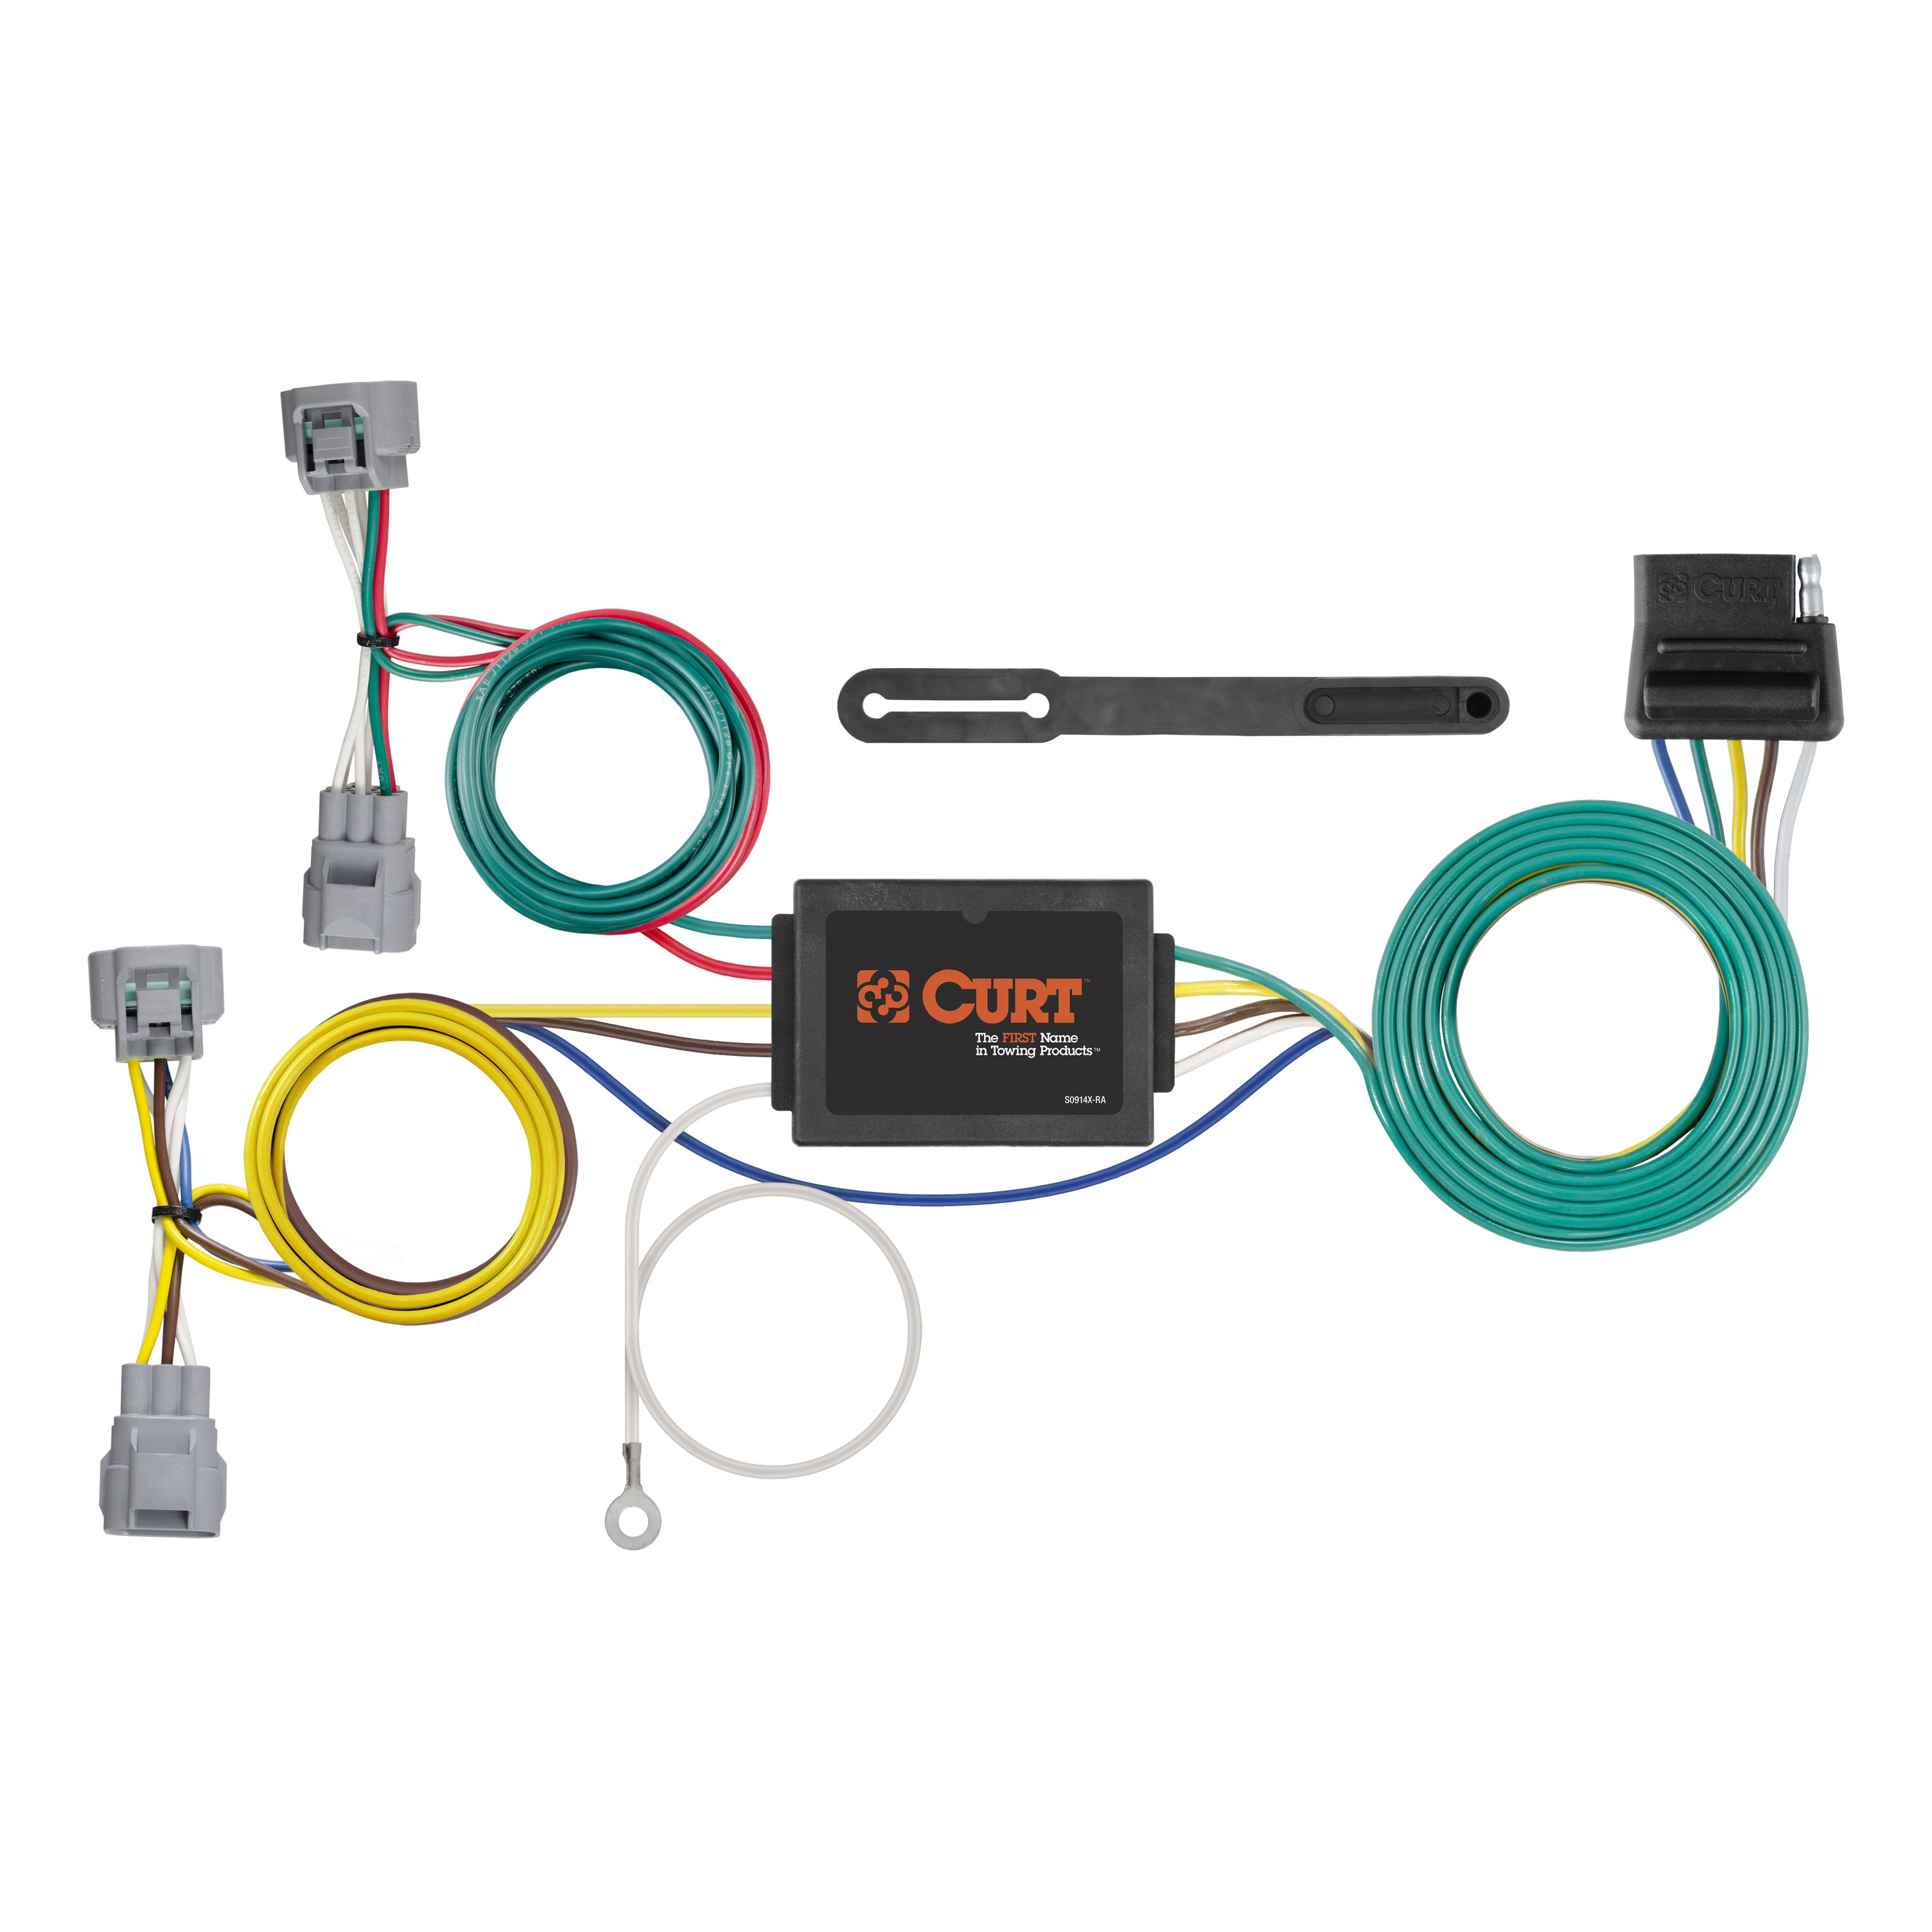 Arb Wiring Harness For Arb Locker moreover Arb Wiring Harness Schematic furthermore 2000 Toyota Land Cruiser Trailer Wiring Harness besides E Locker Wiring Harness additionally Toyota T100 Wiring Harness. on tacoma e locker wiring harness